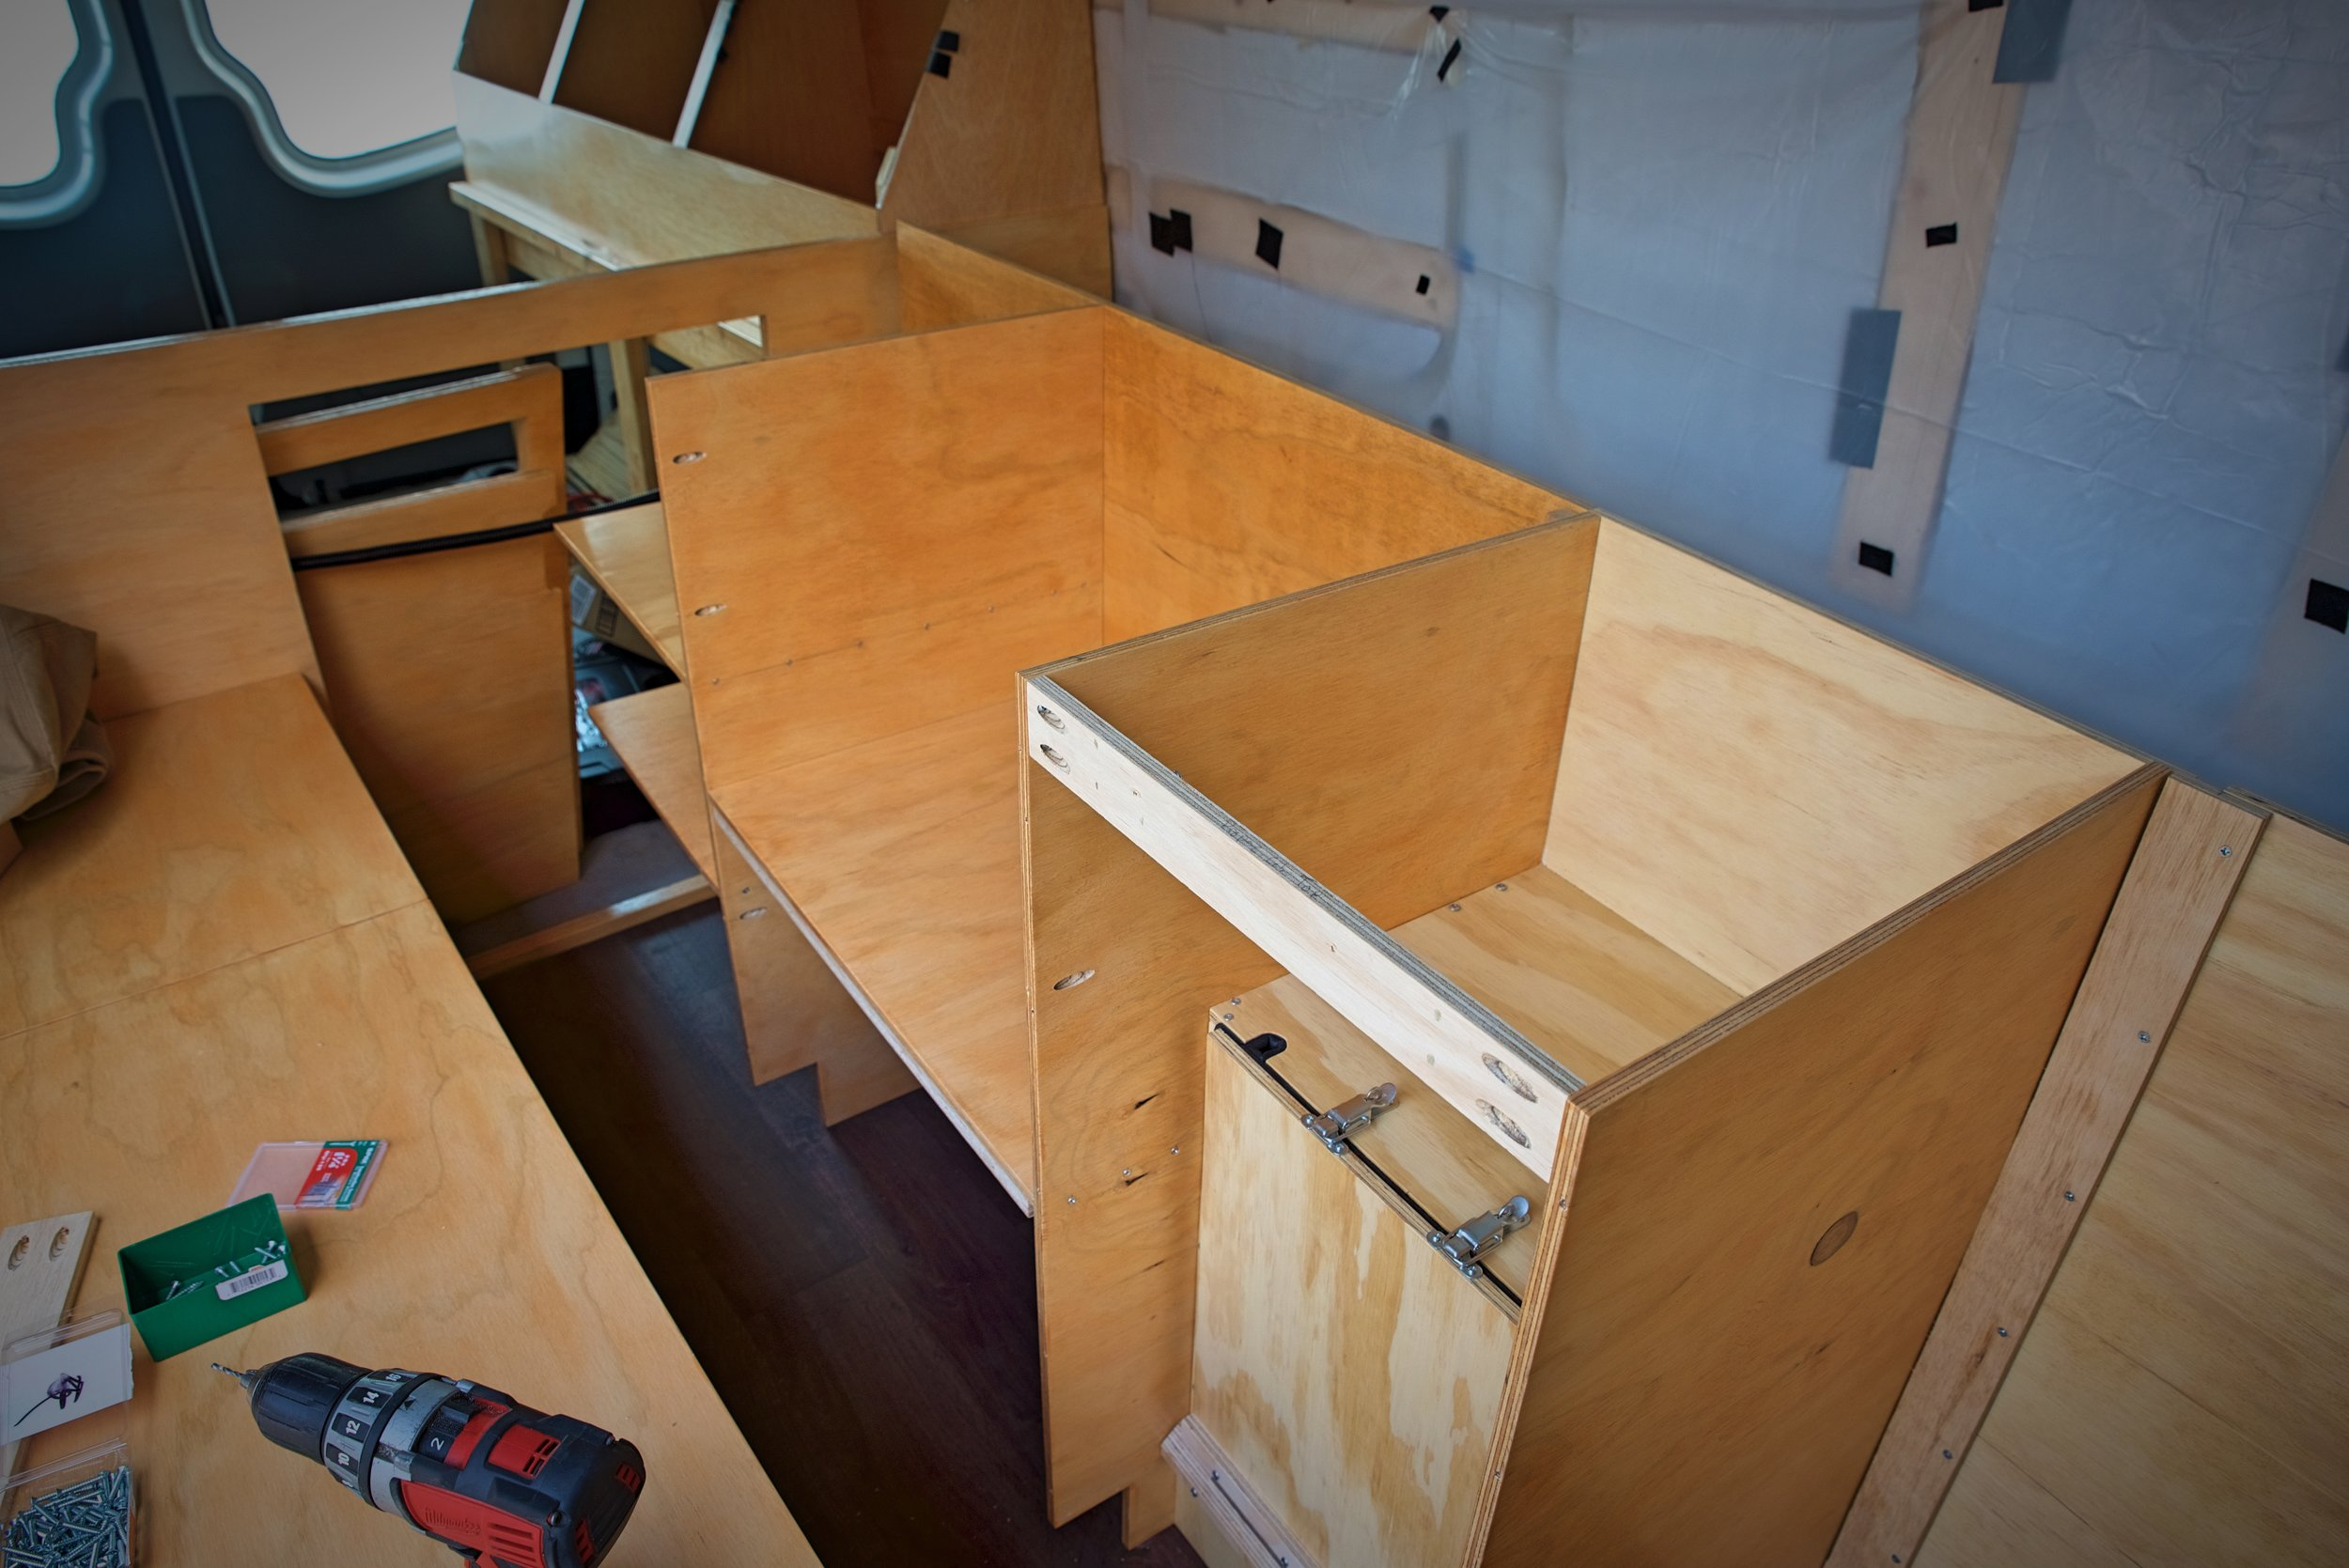 In this photo you can see how the cabinets were connected using a brace that joins the backs of the two cases.